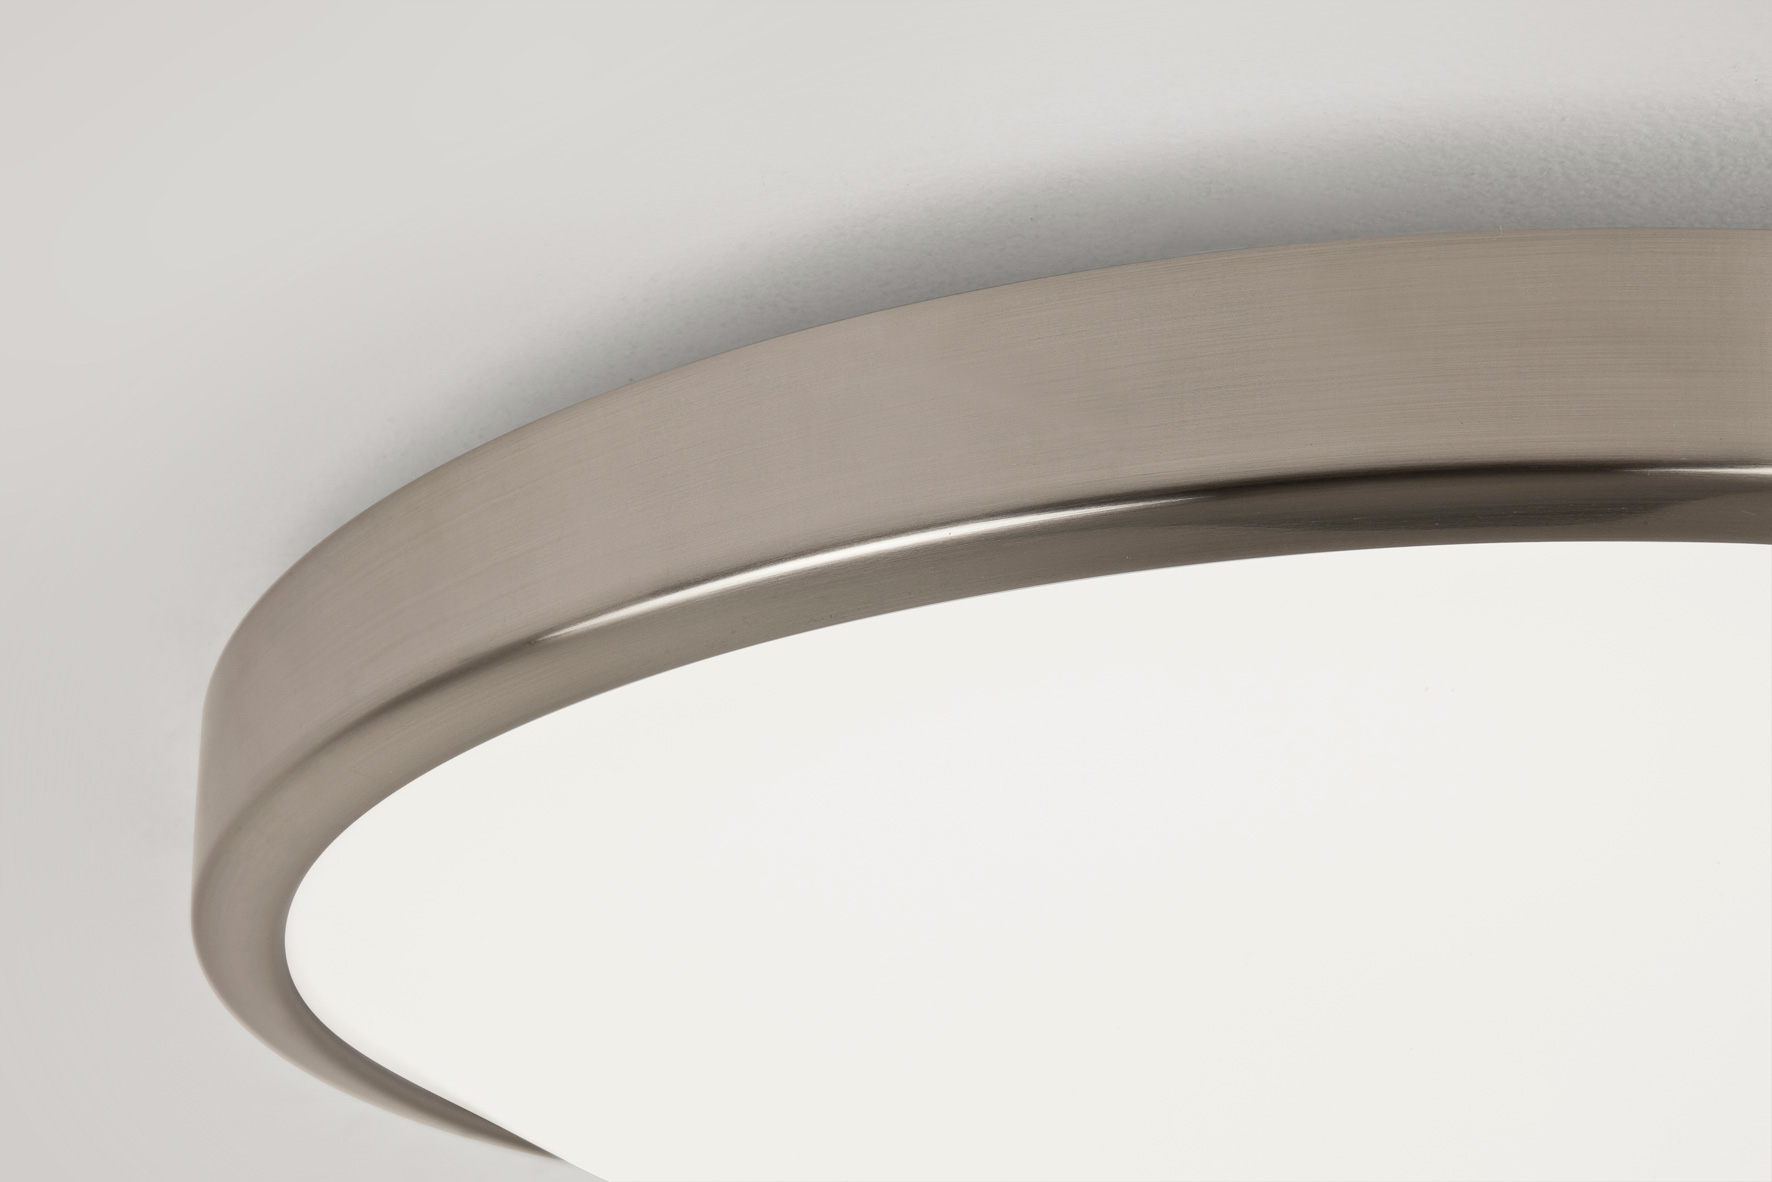 Astro Osaka 0906 round  bathroom low energy ceiling wall light 28W matt nickel Thumbnail 2